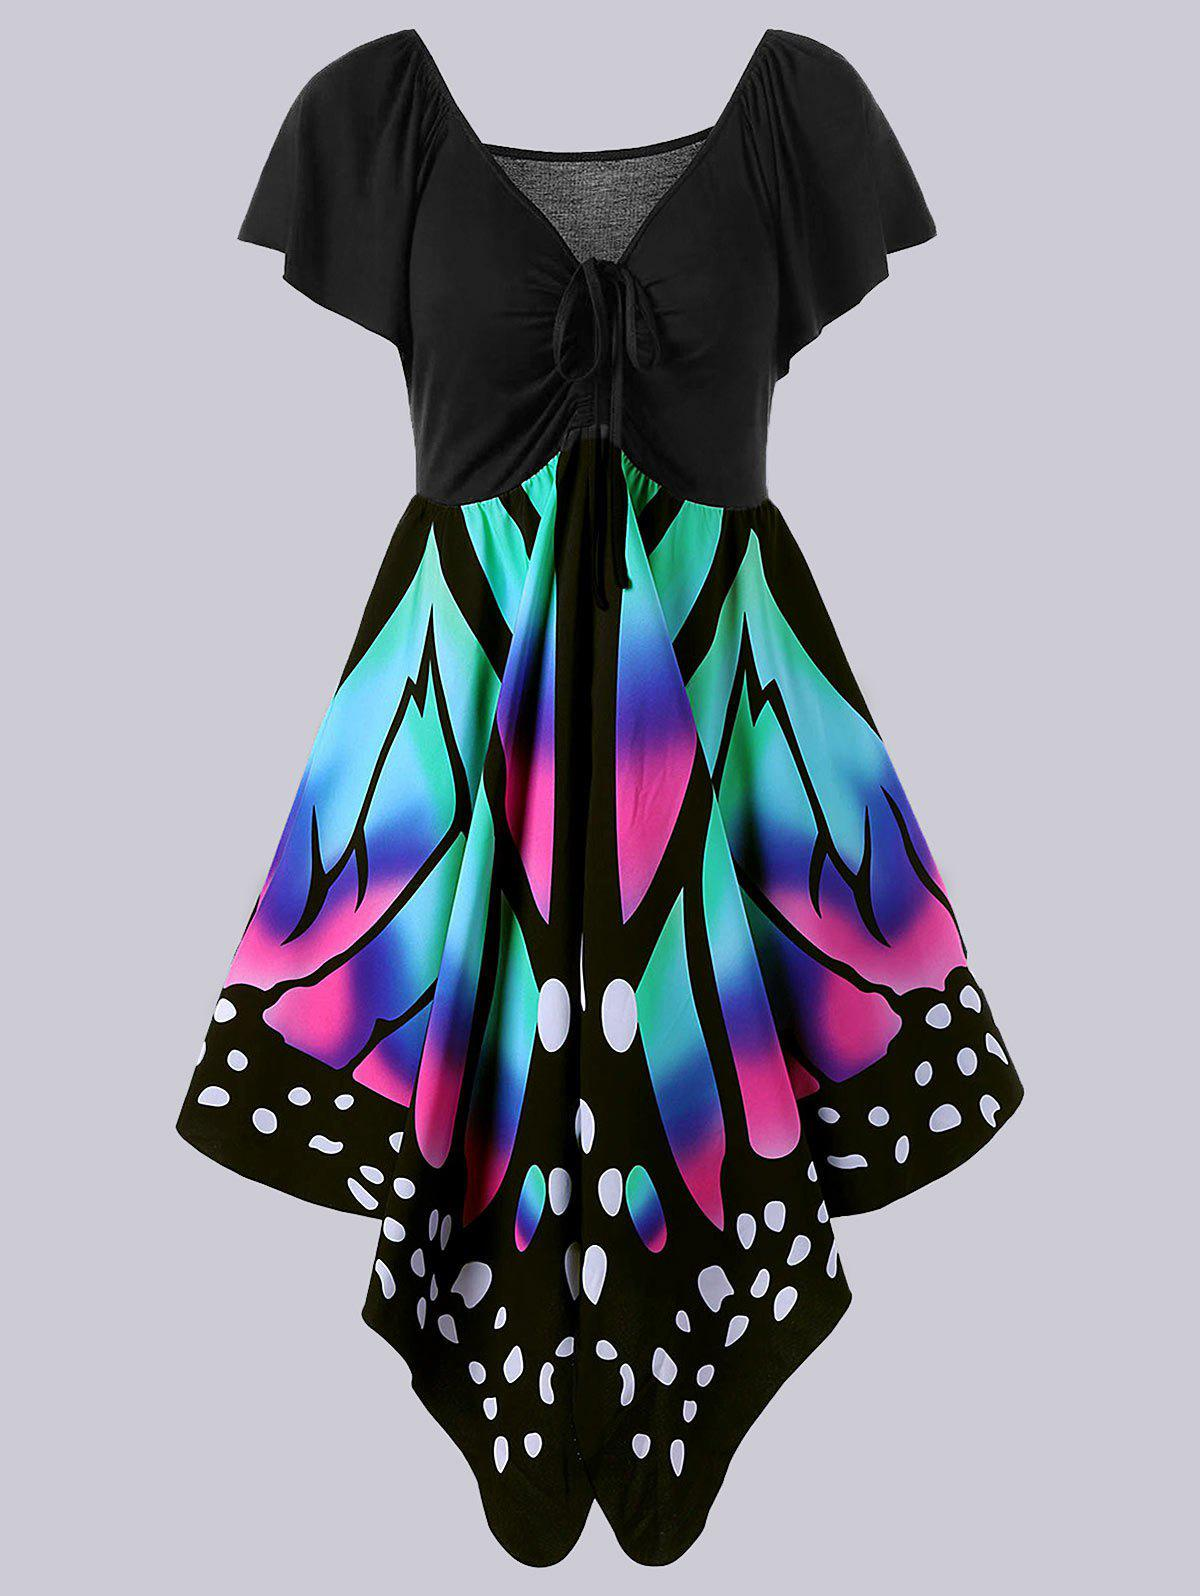 Plus Size Empire Waist Butterfly Pattern DressWOMEN<br><br>Size: 4XL; Color: BLACK AND PINK; Style: Novelty; Material: Polyester,Spandex; Silhouette: A-Line; Dresses Length: Knee-Length; Neckline: V-Neck; Sleeve Length: Short Sleeves; Pattern Type: Butterfly; With Belt: No; Season: Summer; Weight: 0.3600kg; Package Contents: 1 x Dress;